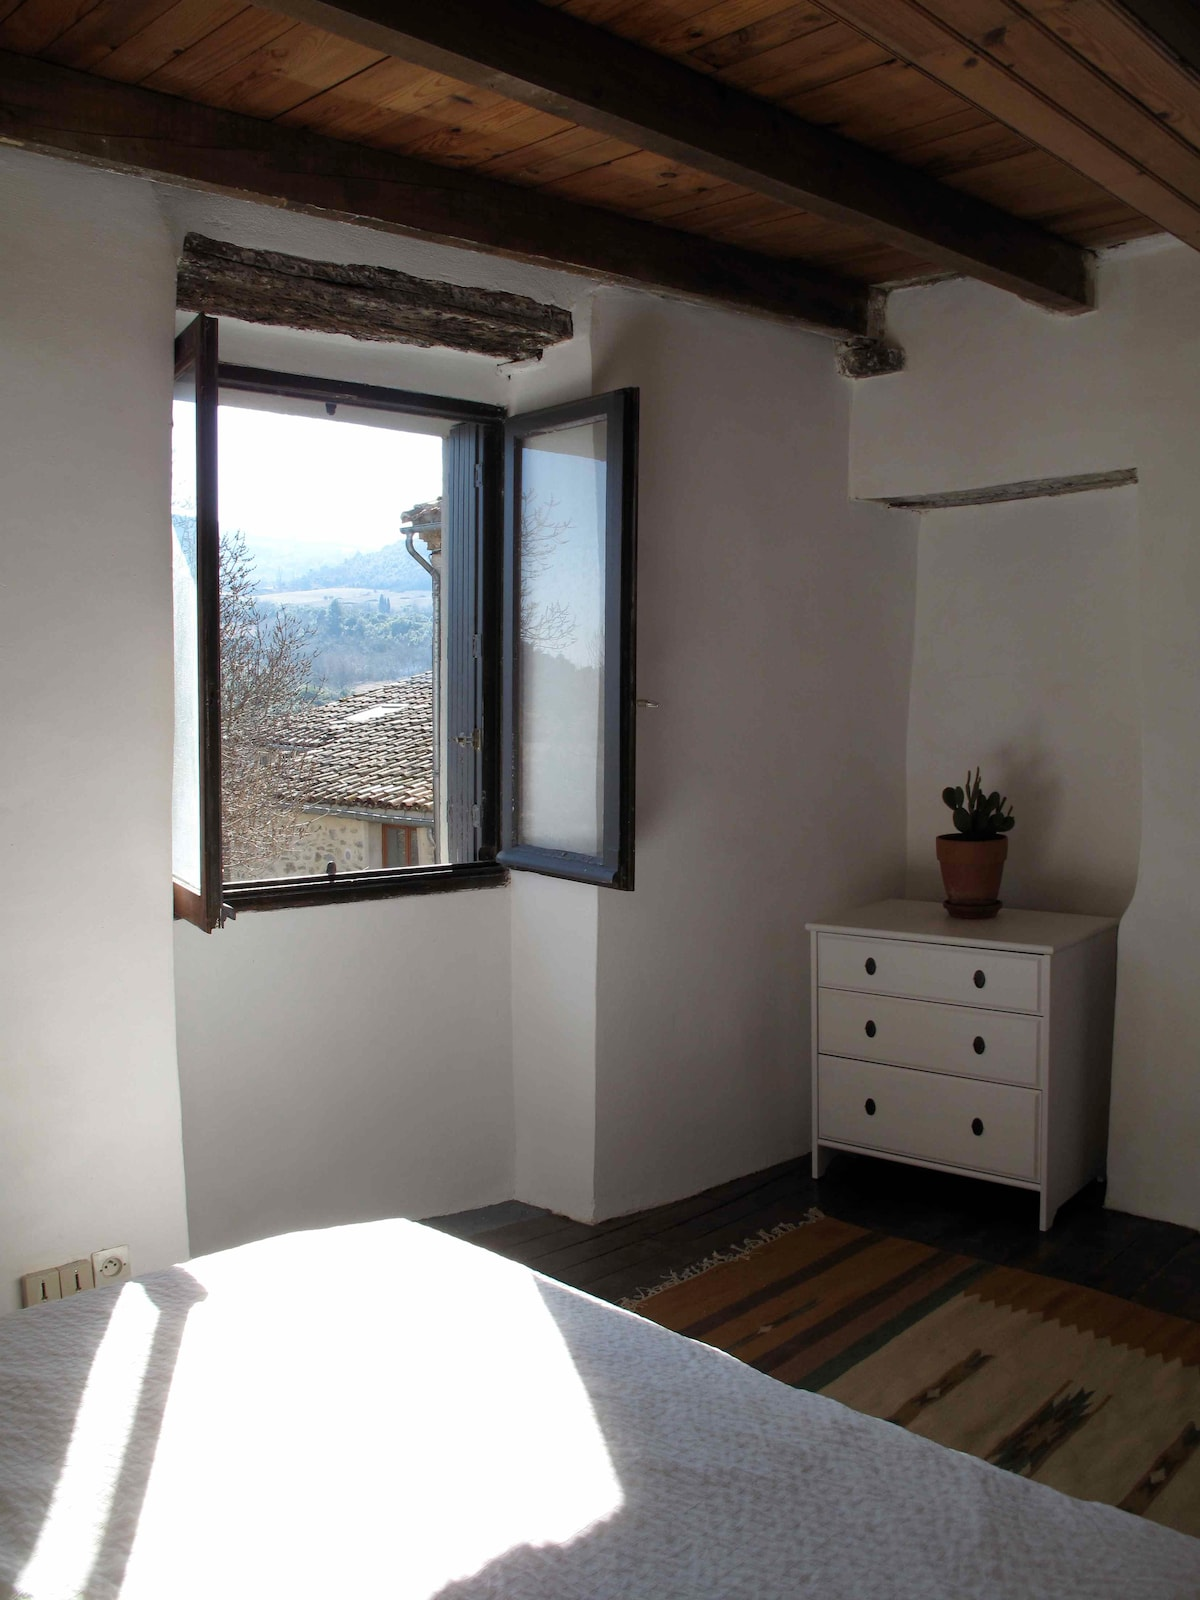 The second bedroom has a view up towards the plateau